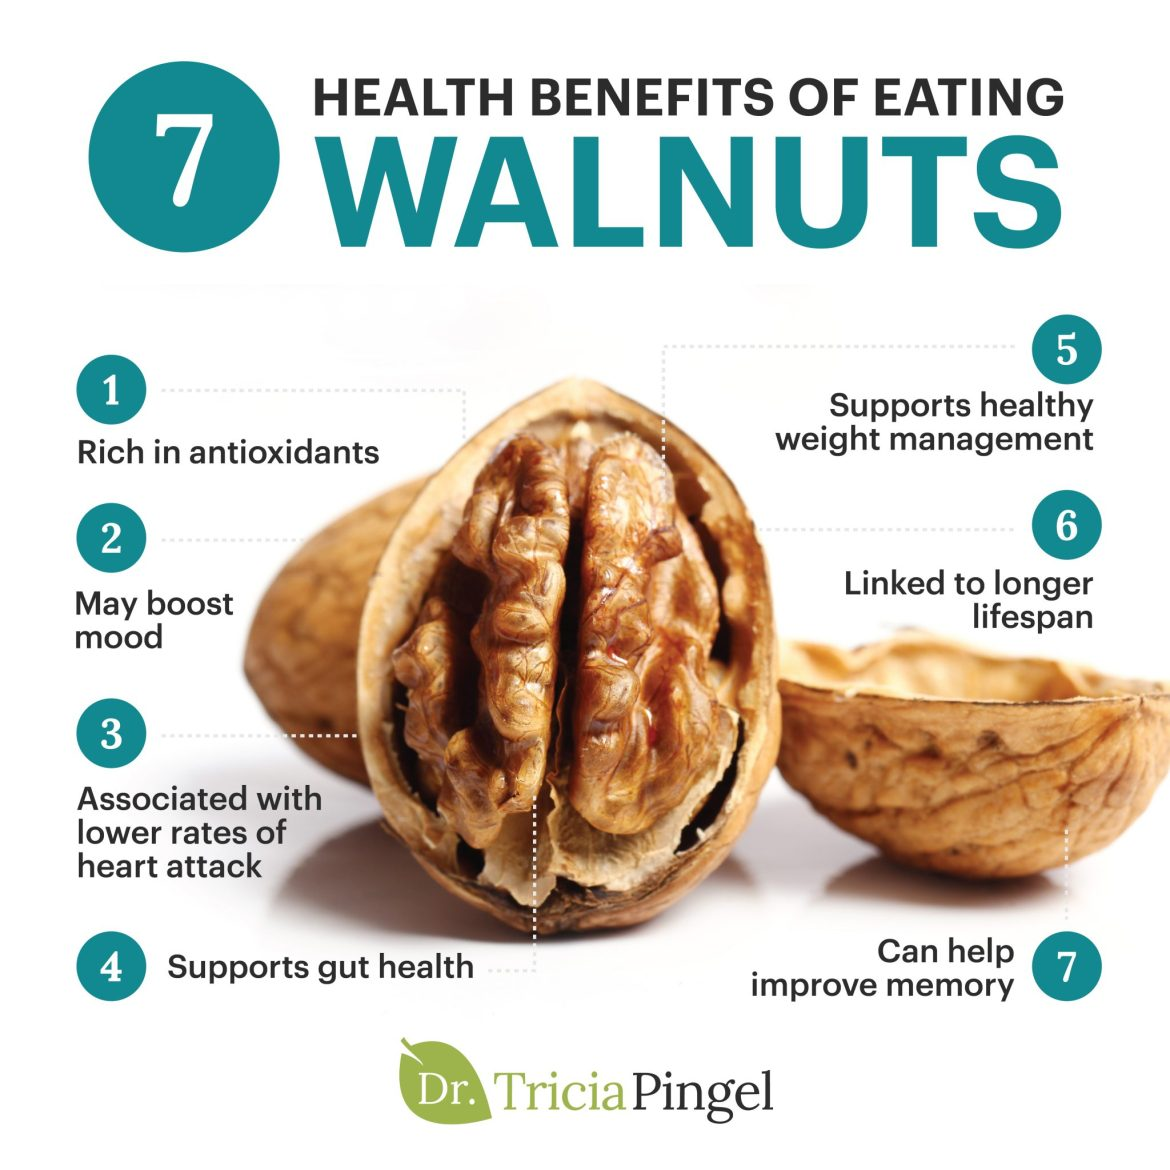 Nutritional benefits of walnuts - Dr. Pingel